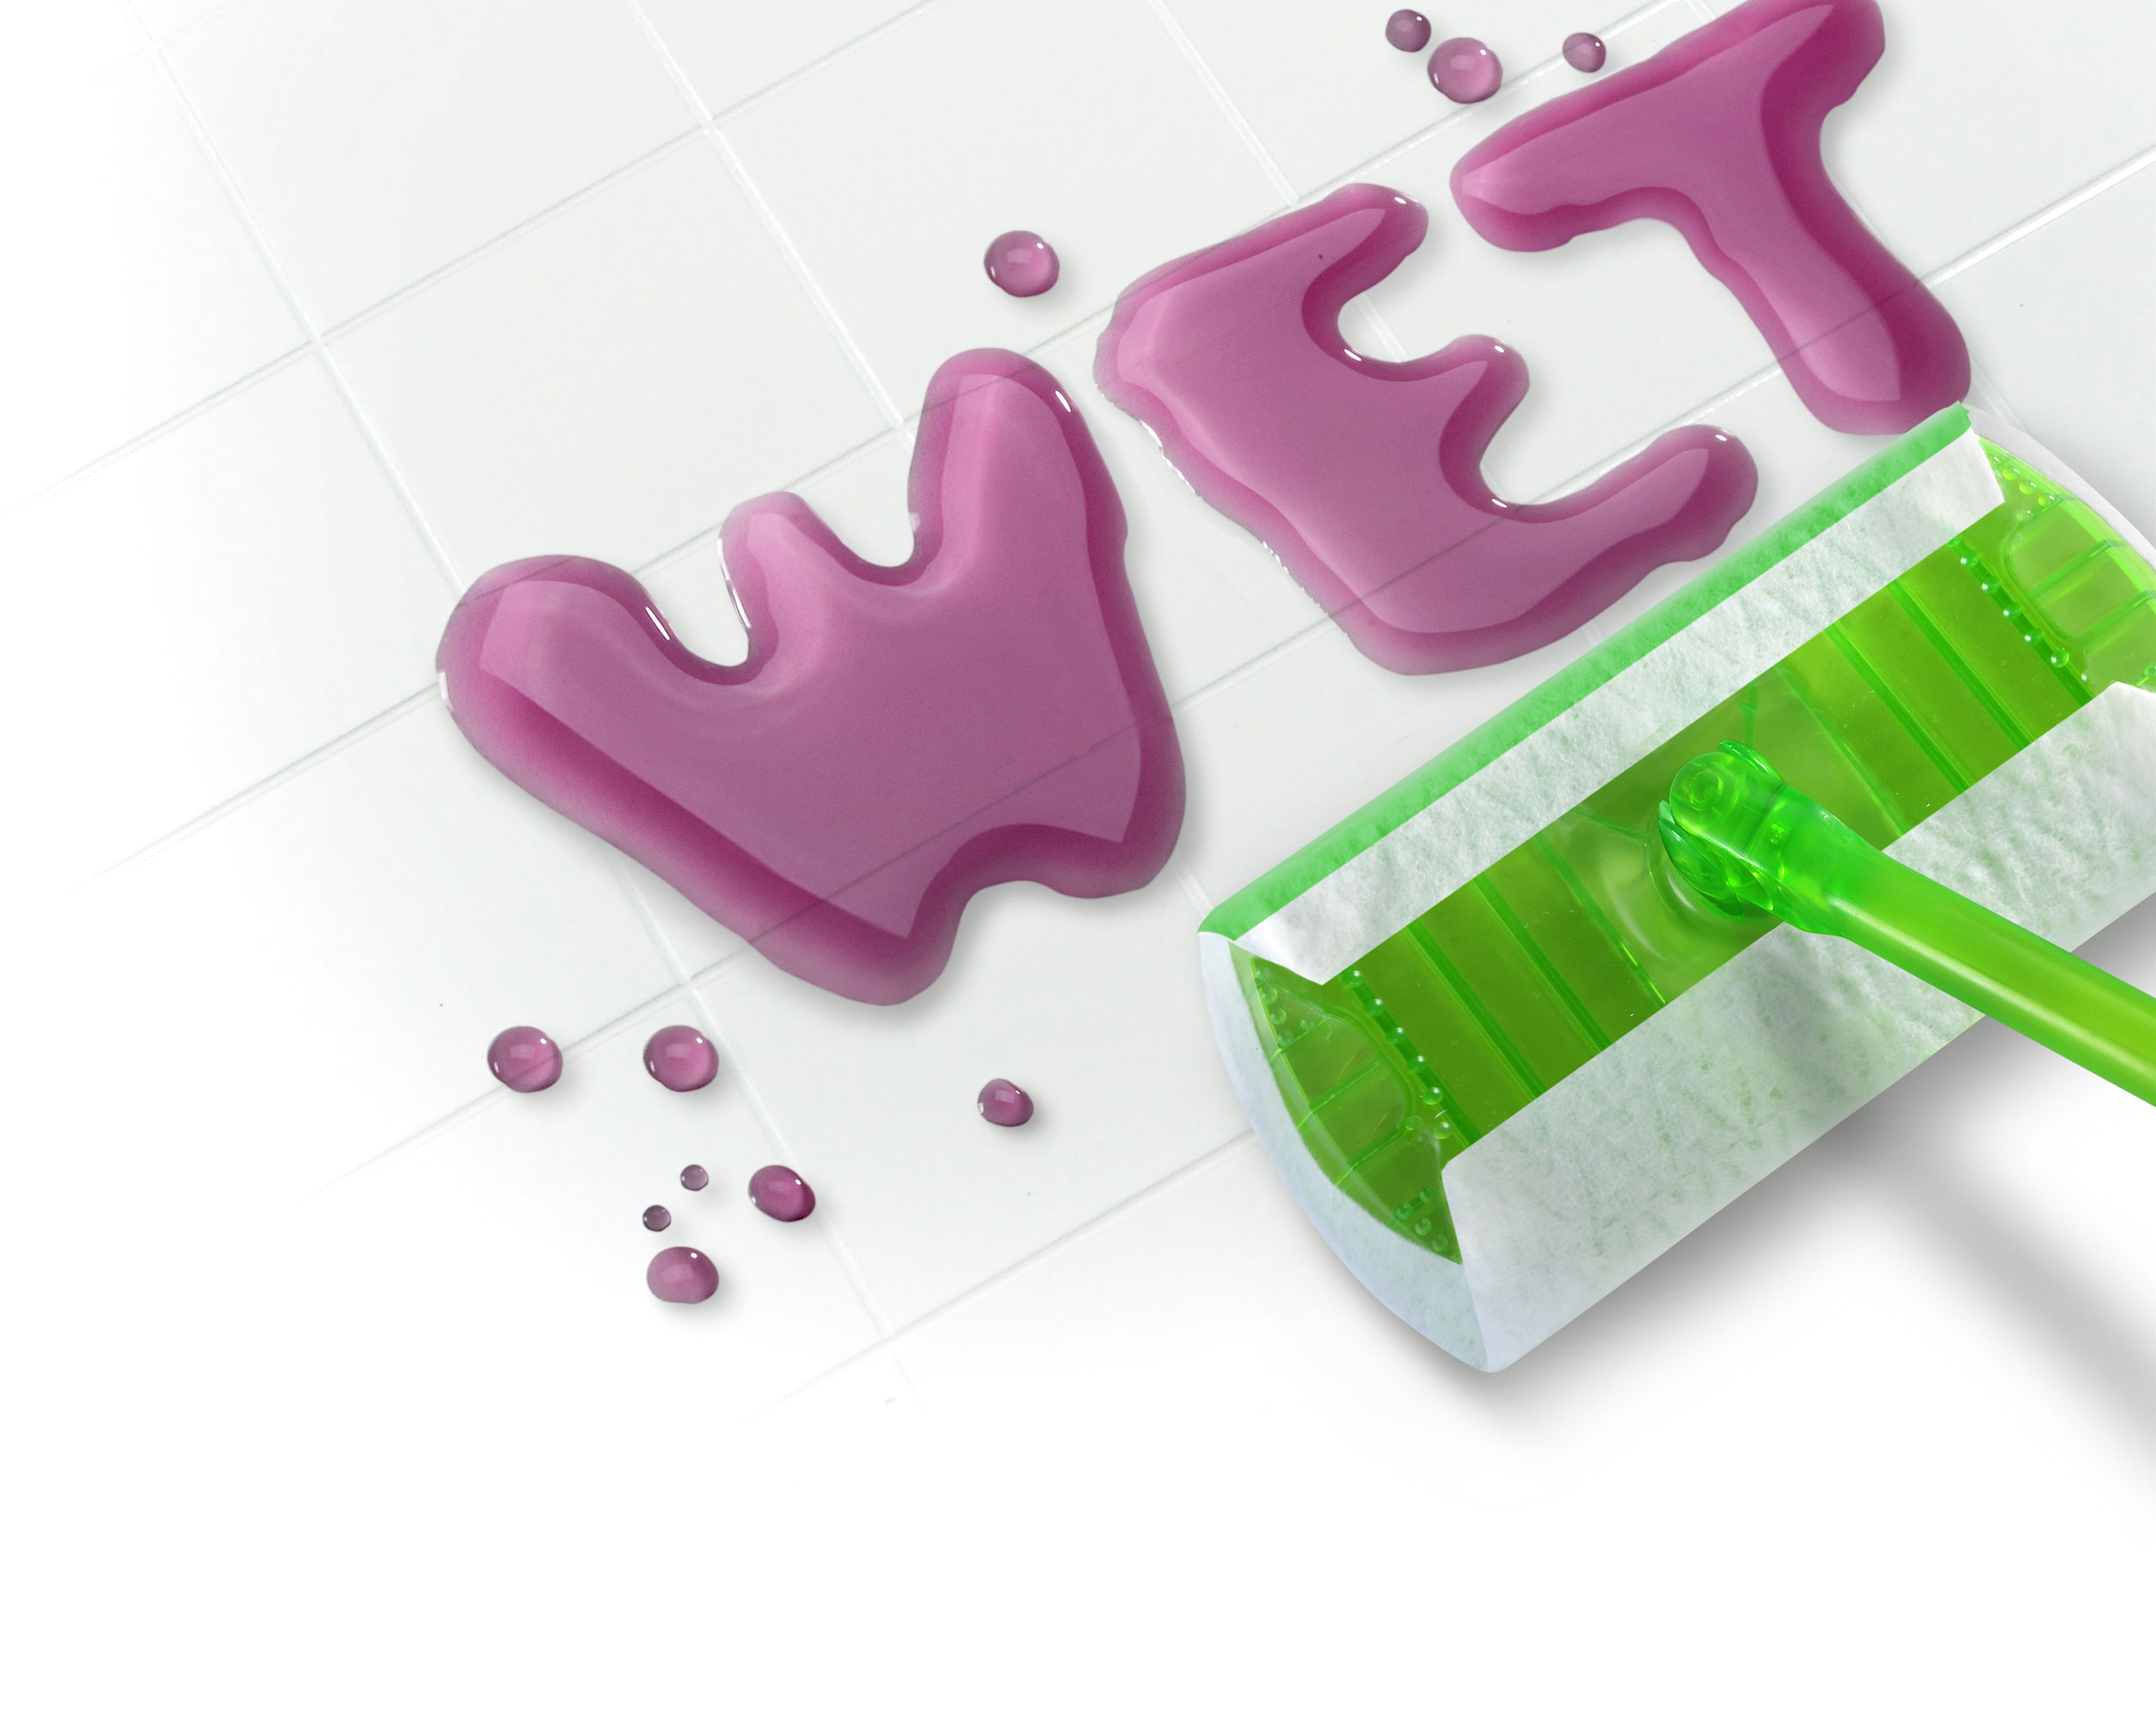 mike wepplo photoreal photography swiffer wet jet mop